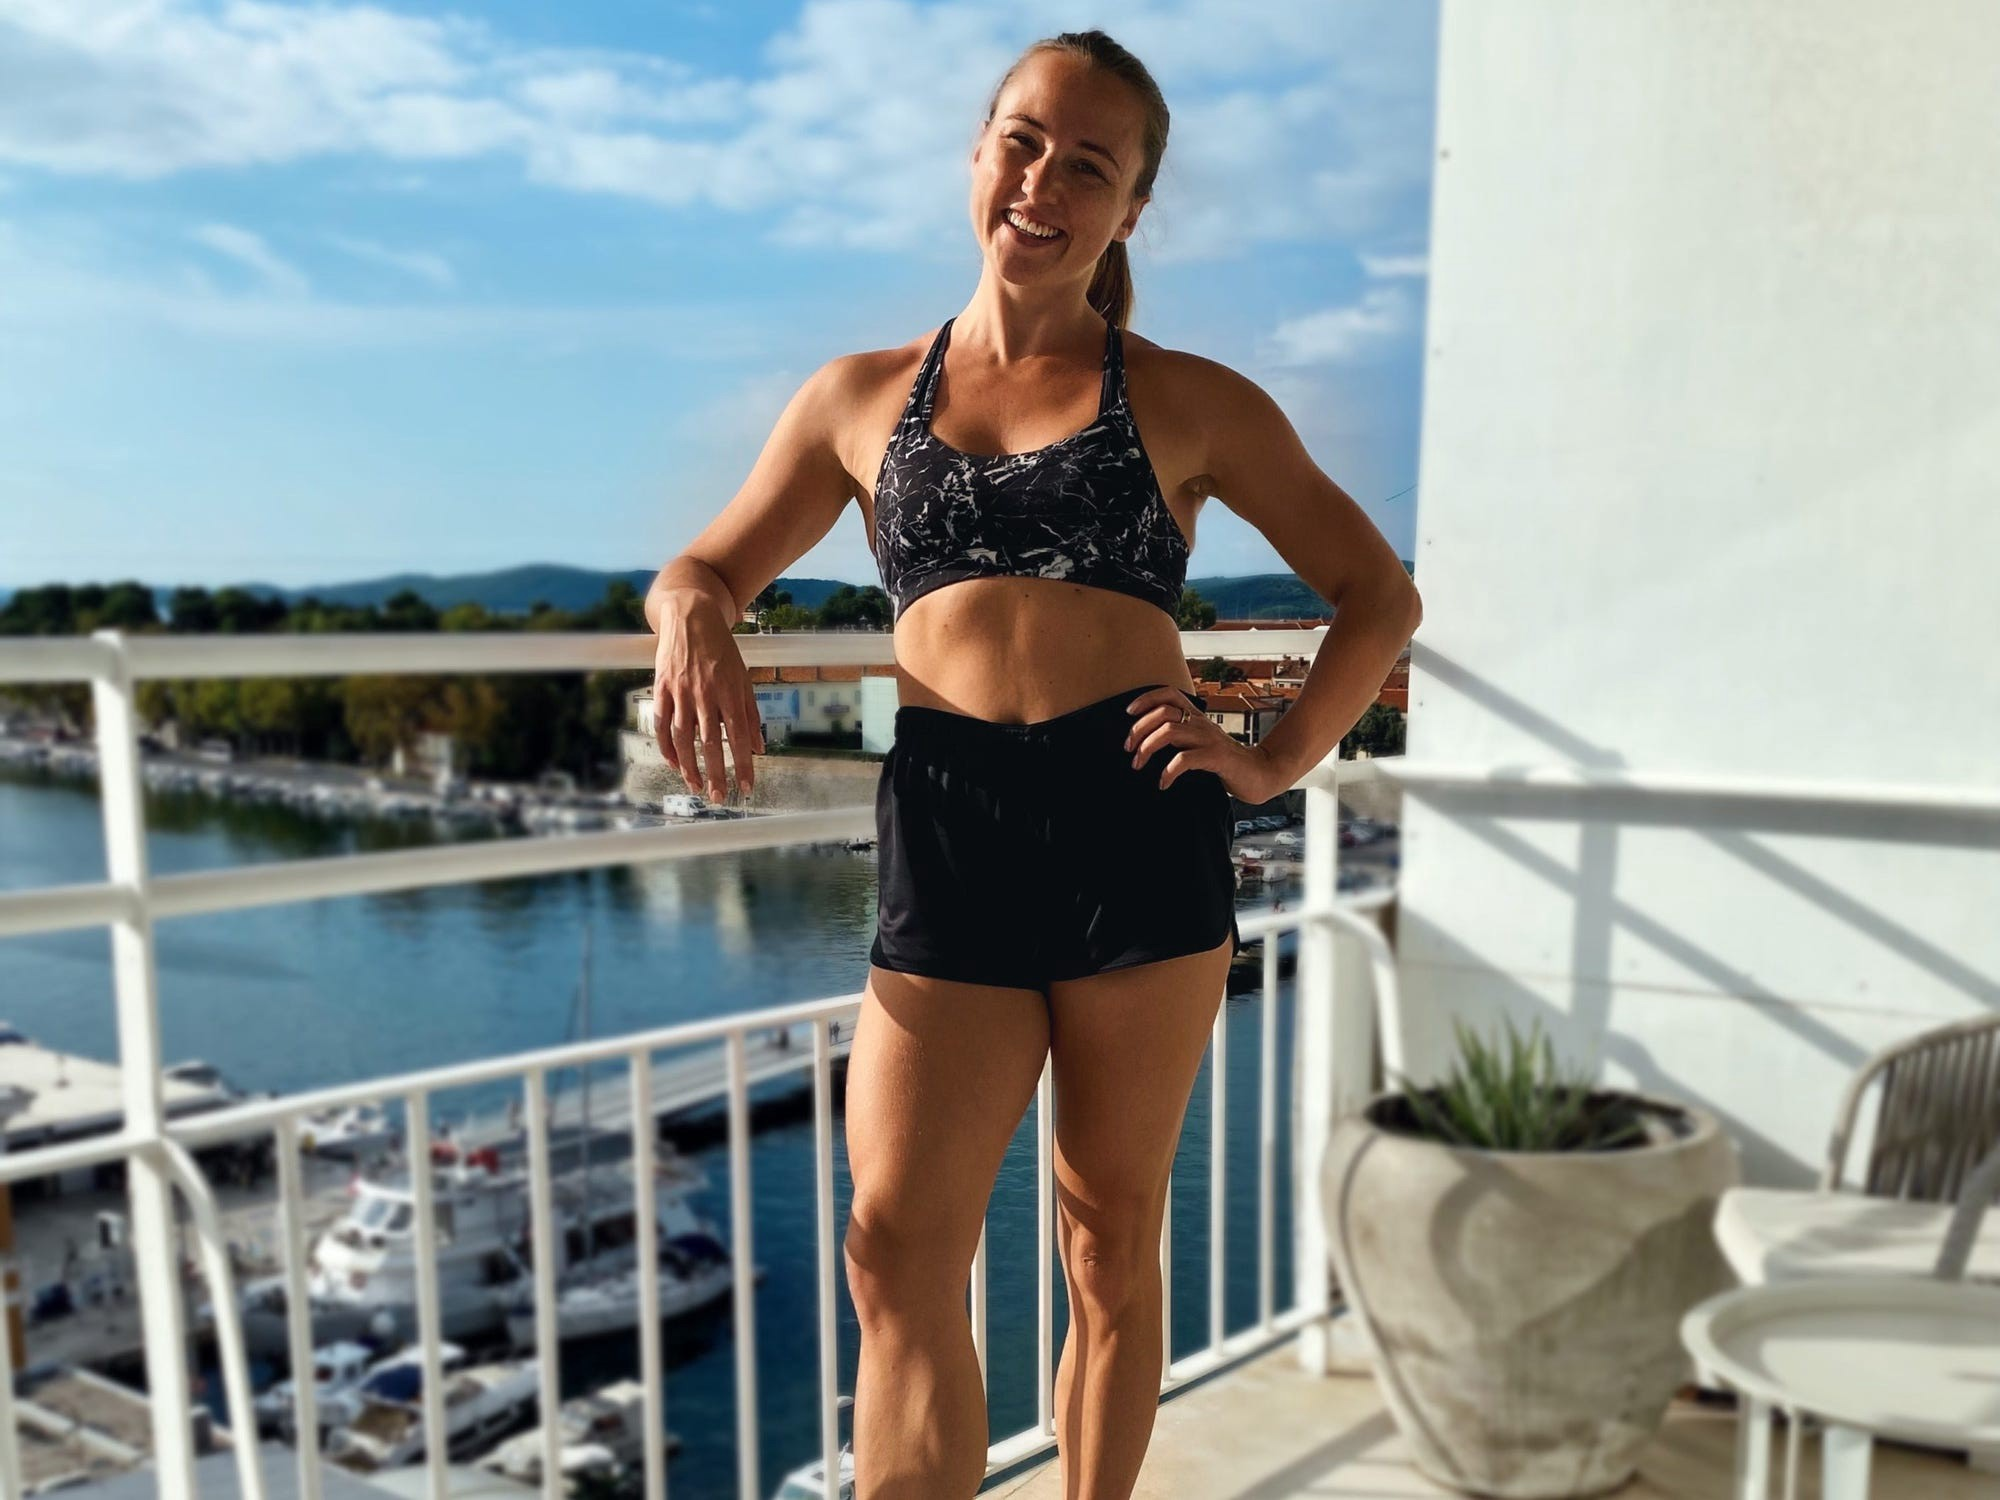 The author, Rachel Hosie, on a balcony overlooking a body of water while on vacation.